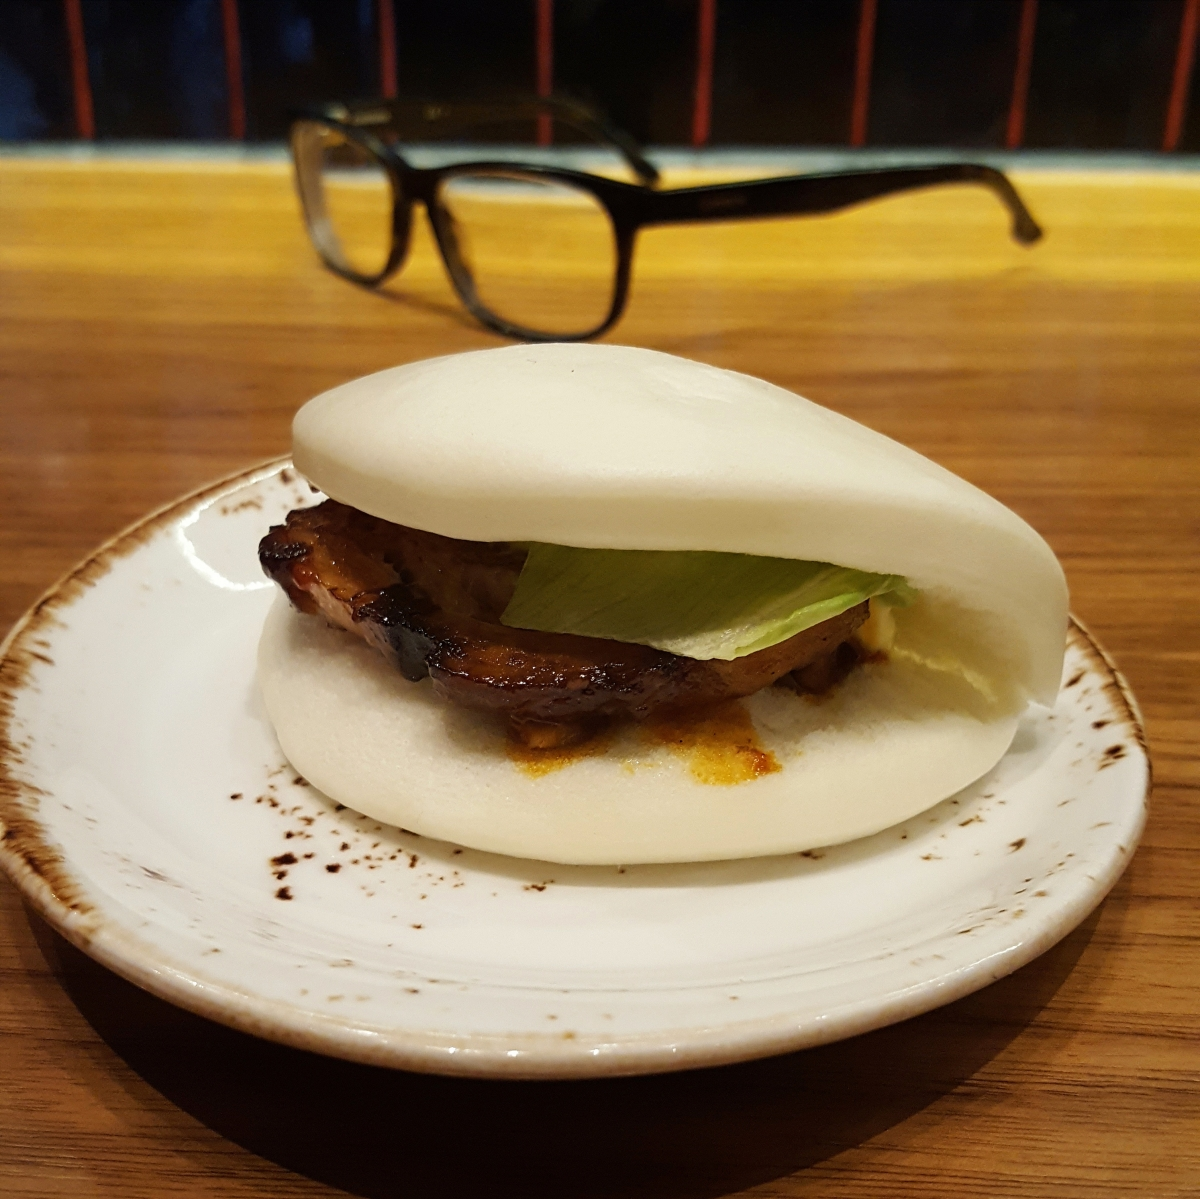 Hirata Pork Bun from Ippudo